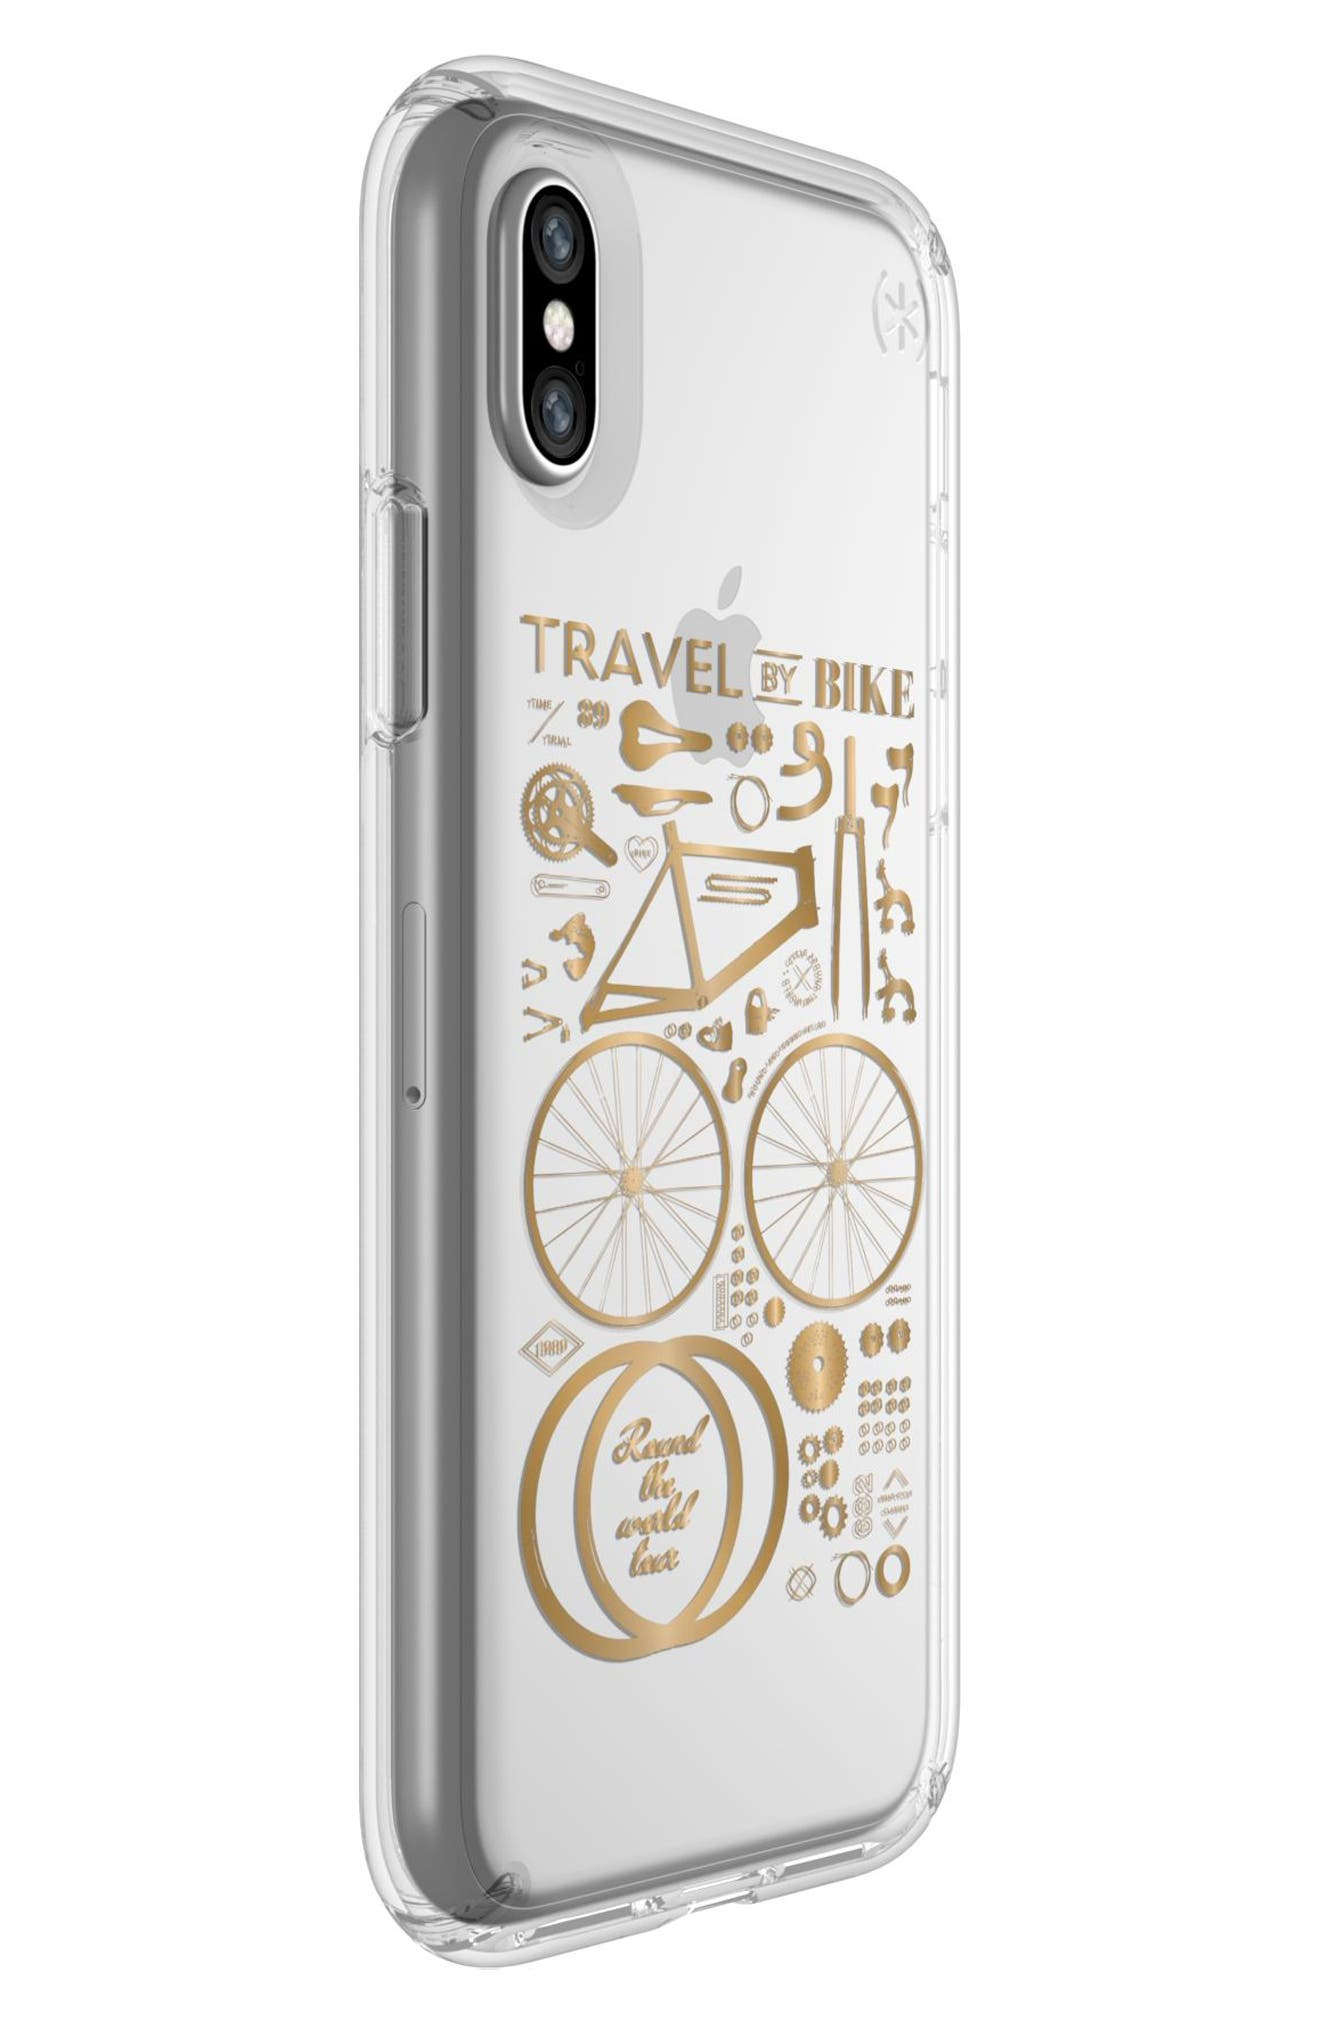 Metallic City Bike Transparent iPhone X Case,                             Alternate thumbnail 2, color,                             City Bike Metallic Gold/ Clear